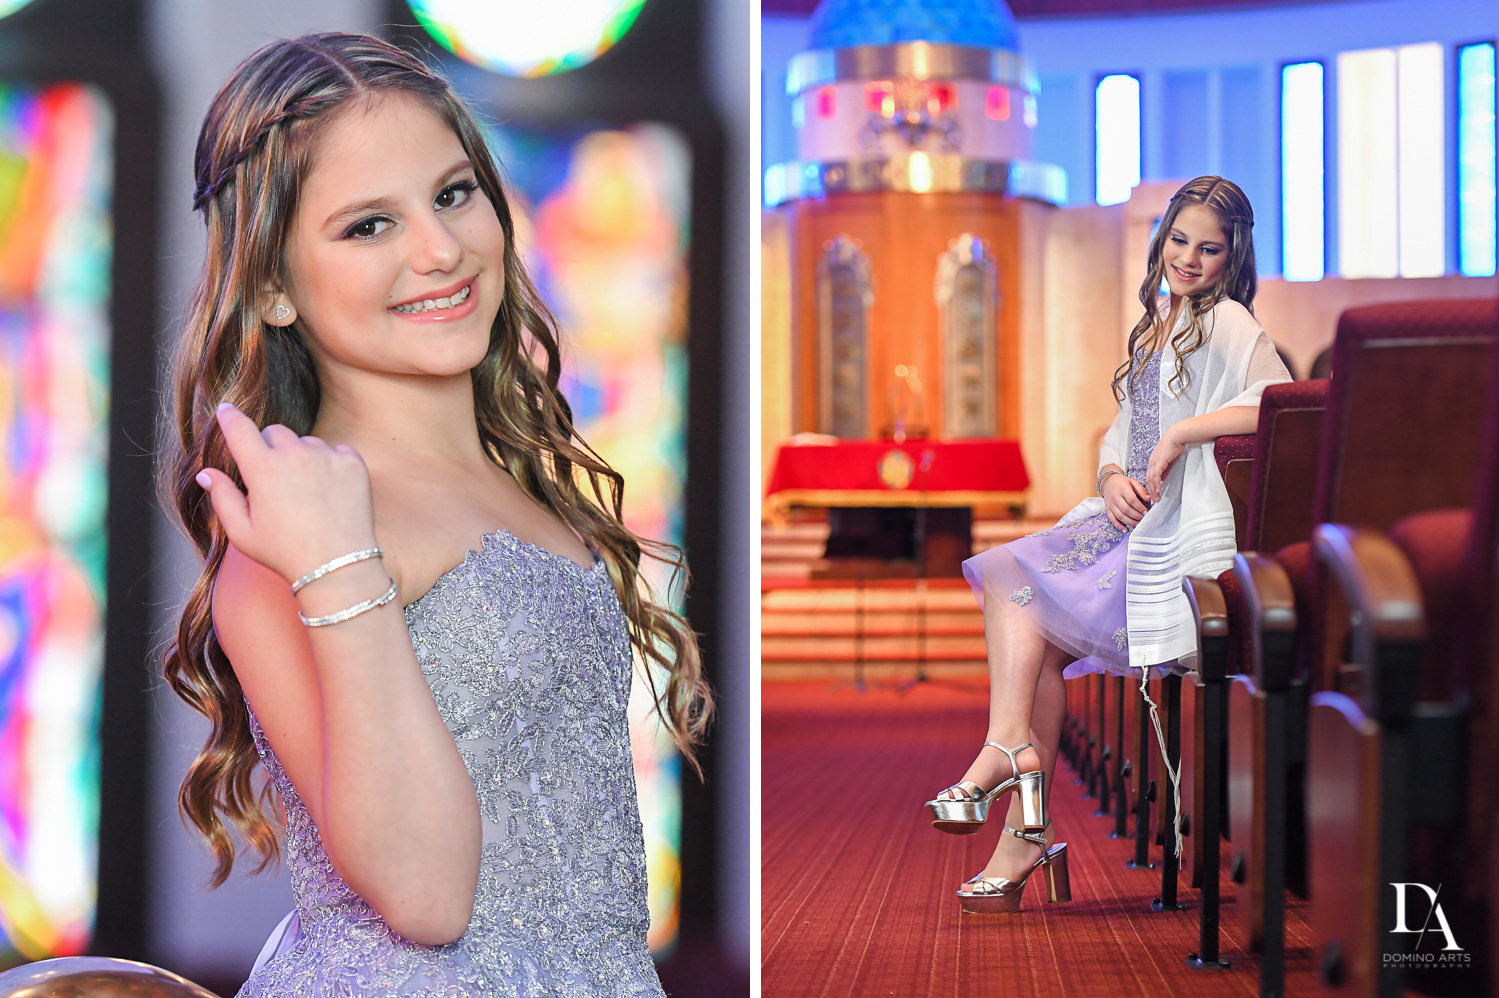 Thirteen at Traditional Jewish Bat Mitzvah at Aventura Turnberry Jewish Center Miami by Domino Arts Photography